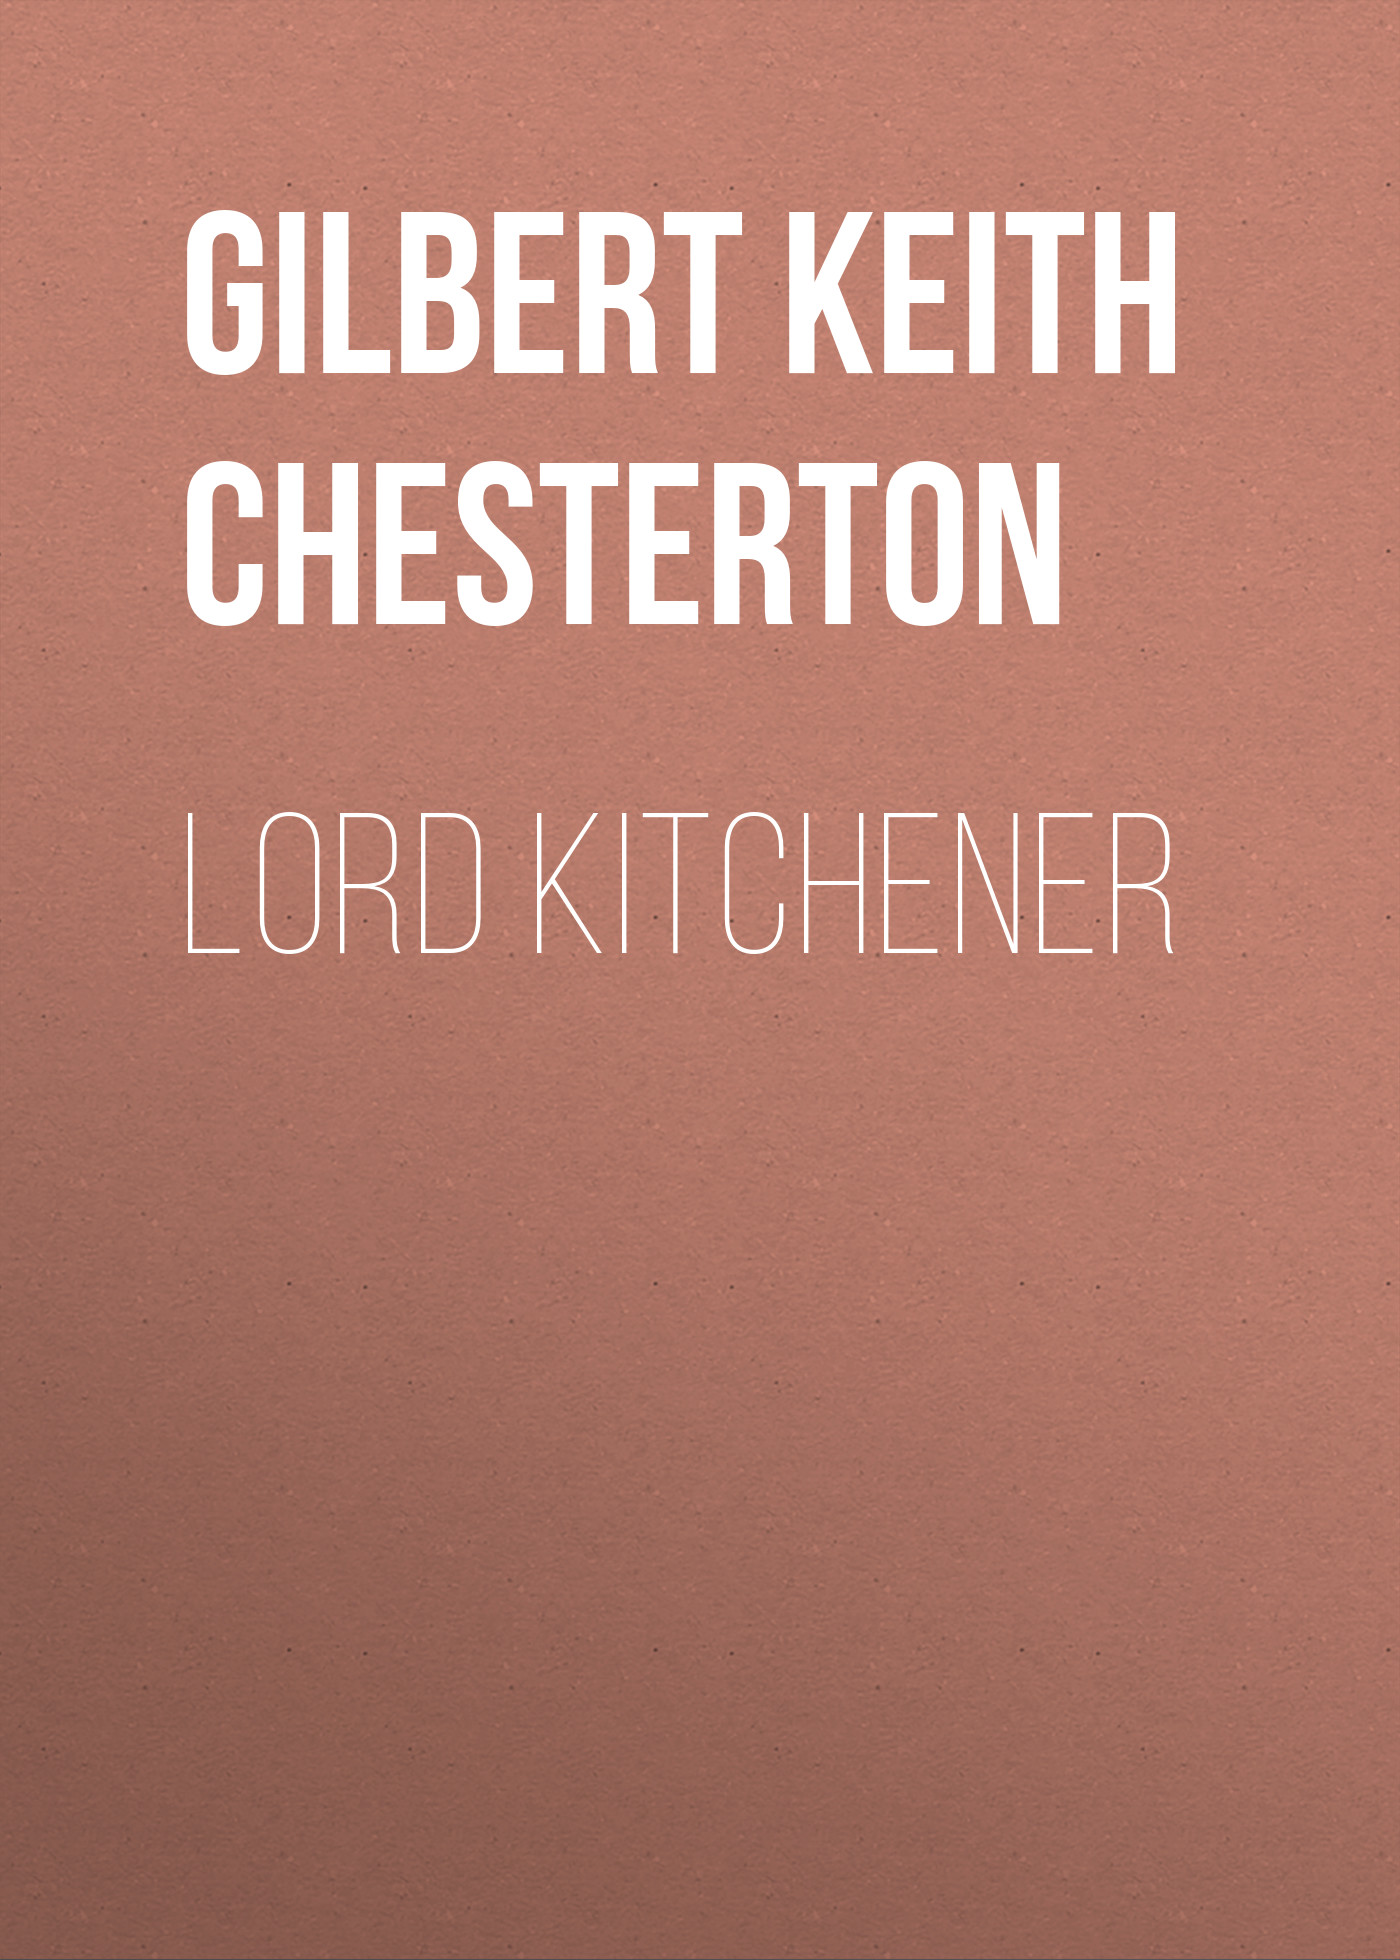 Gilbert Keith Chesterton Lord Kitchener перфоратор makita hr2300 sds plus 720вт